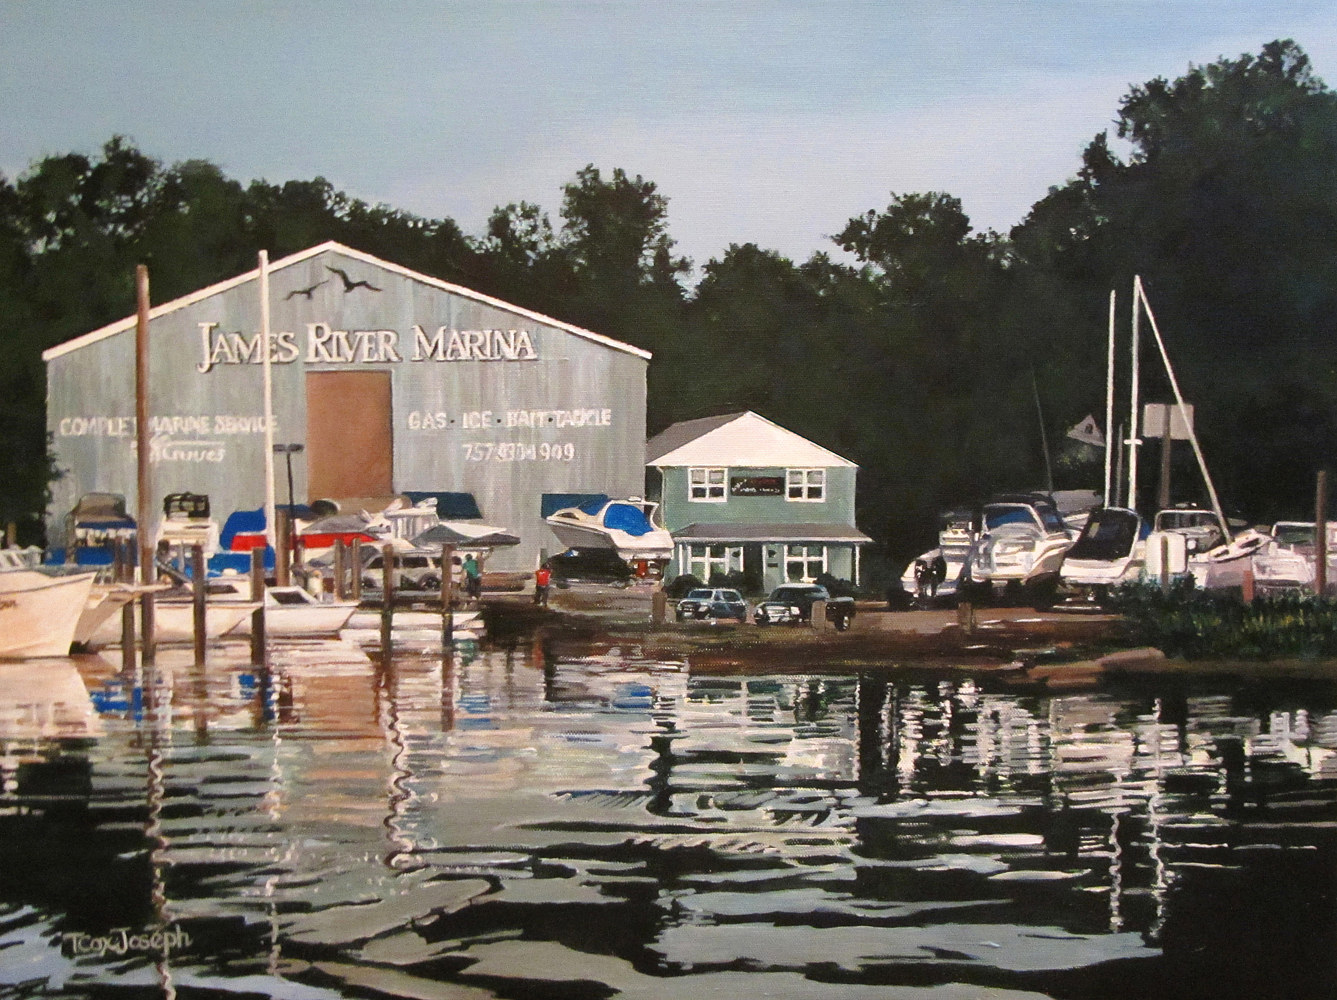 James River Marina Reflections II  by Terry Joseph